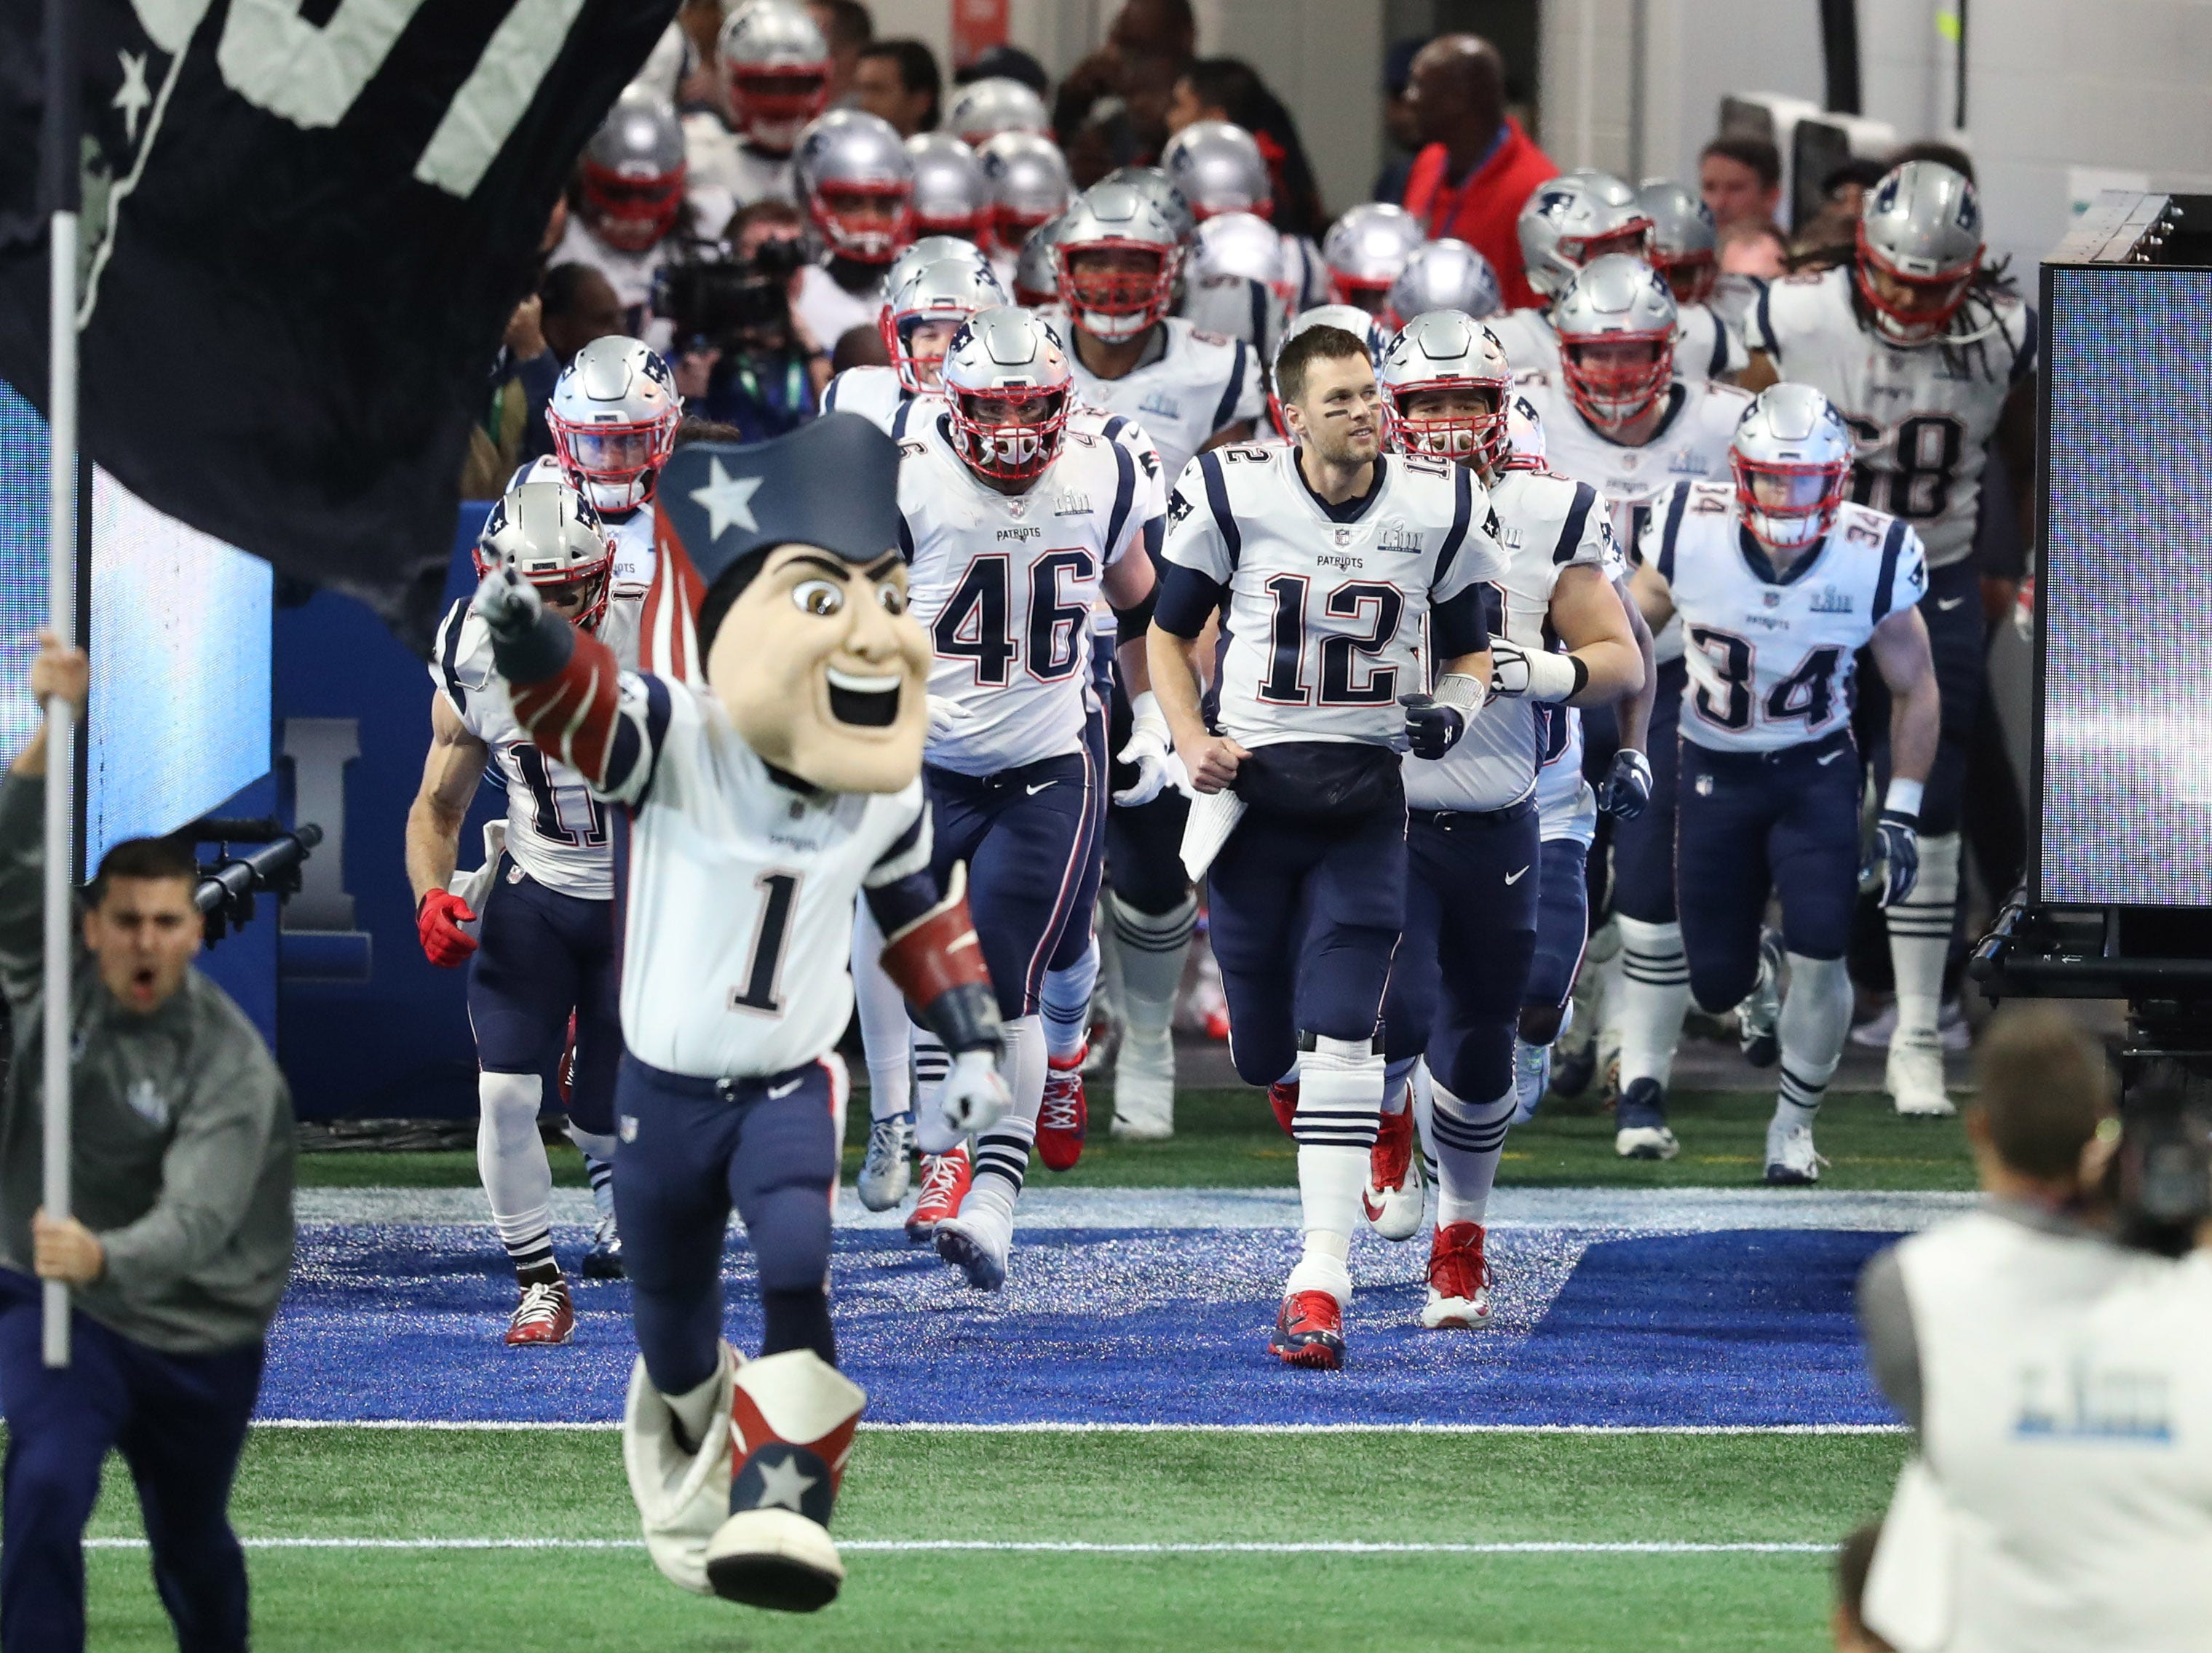 Tom Brady (12) leads the New England Patriots onto the field for Super Bowl LIII at Mercedes-Benz Stadium.